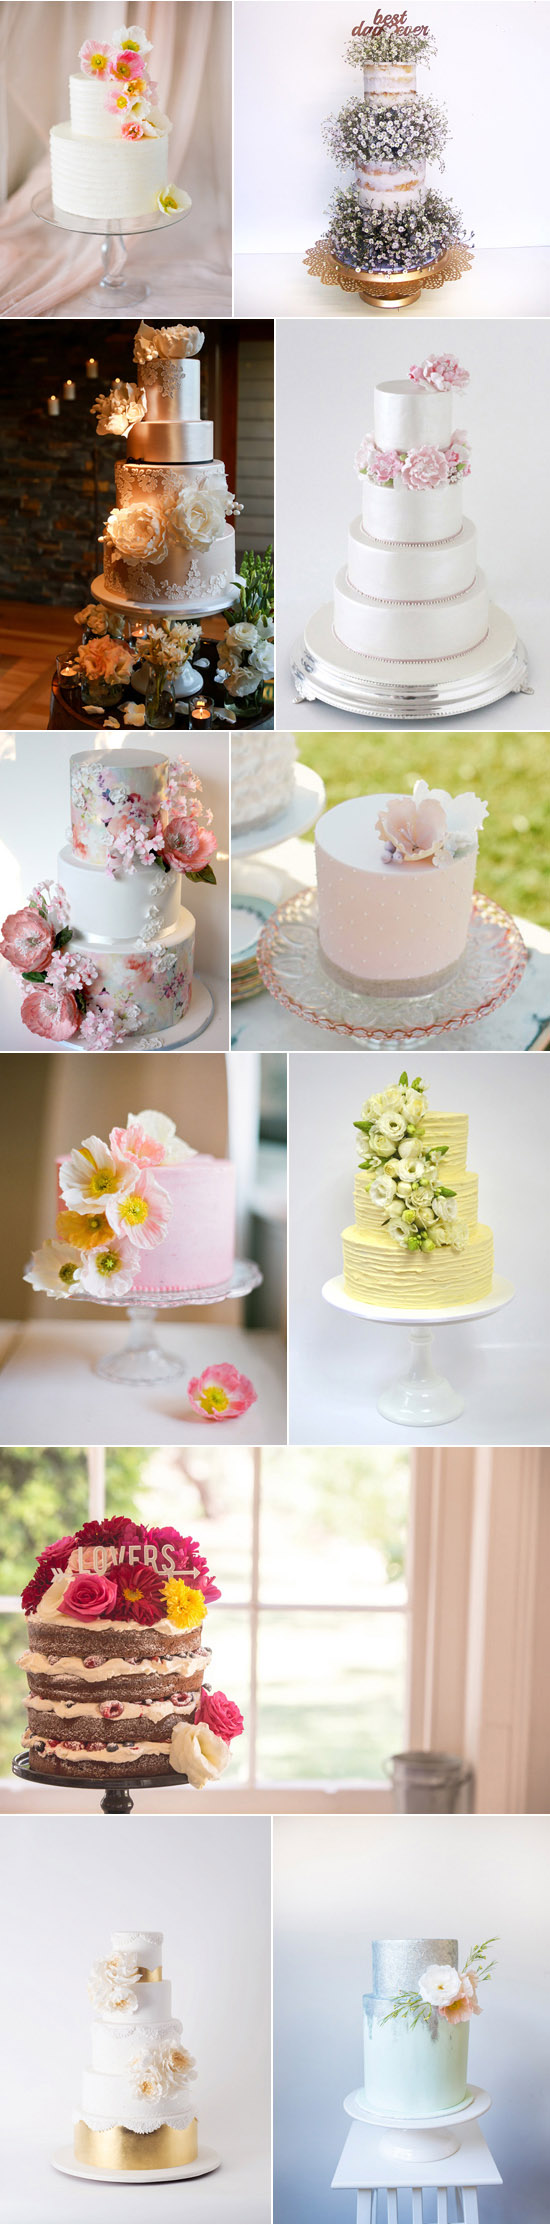 Spring Cakes For Weddings